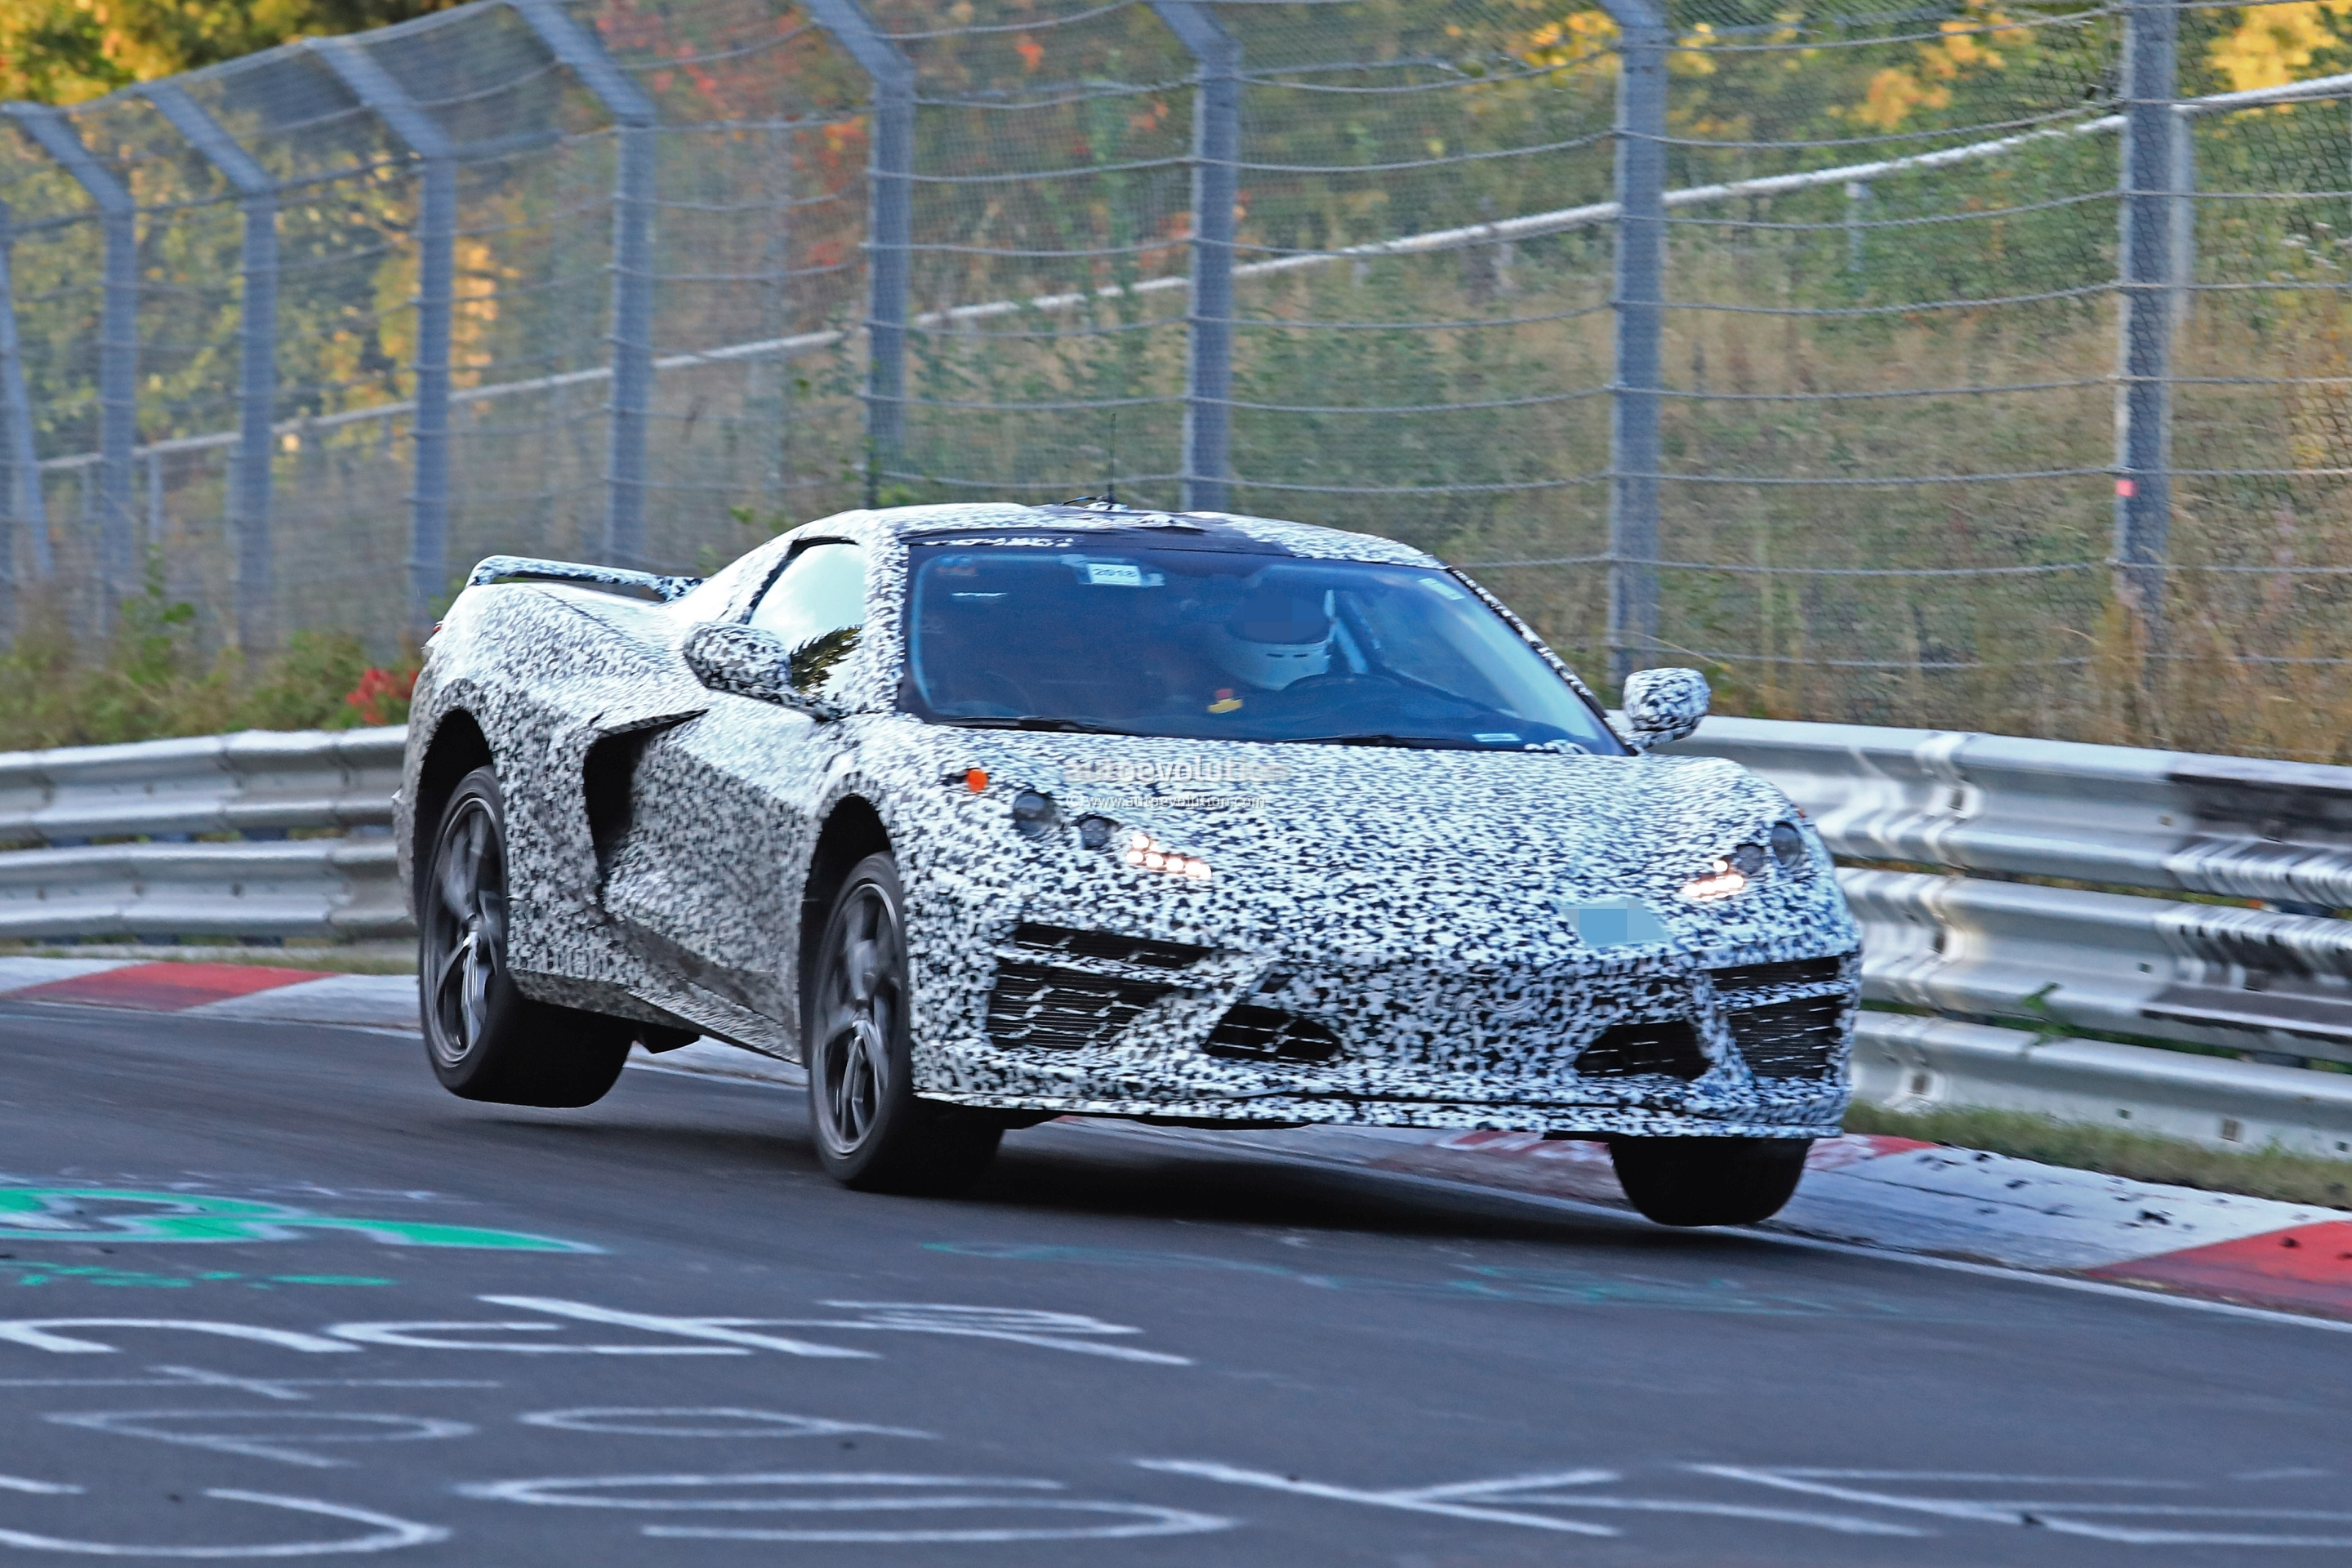 2020 Chevrolet Corvette Spied Testing With C7 At Nurburgring